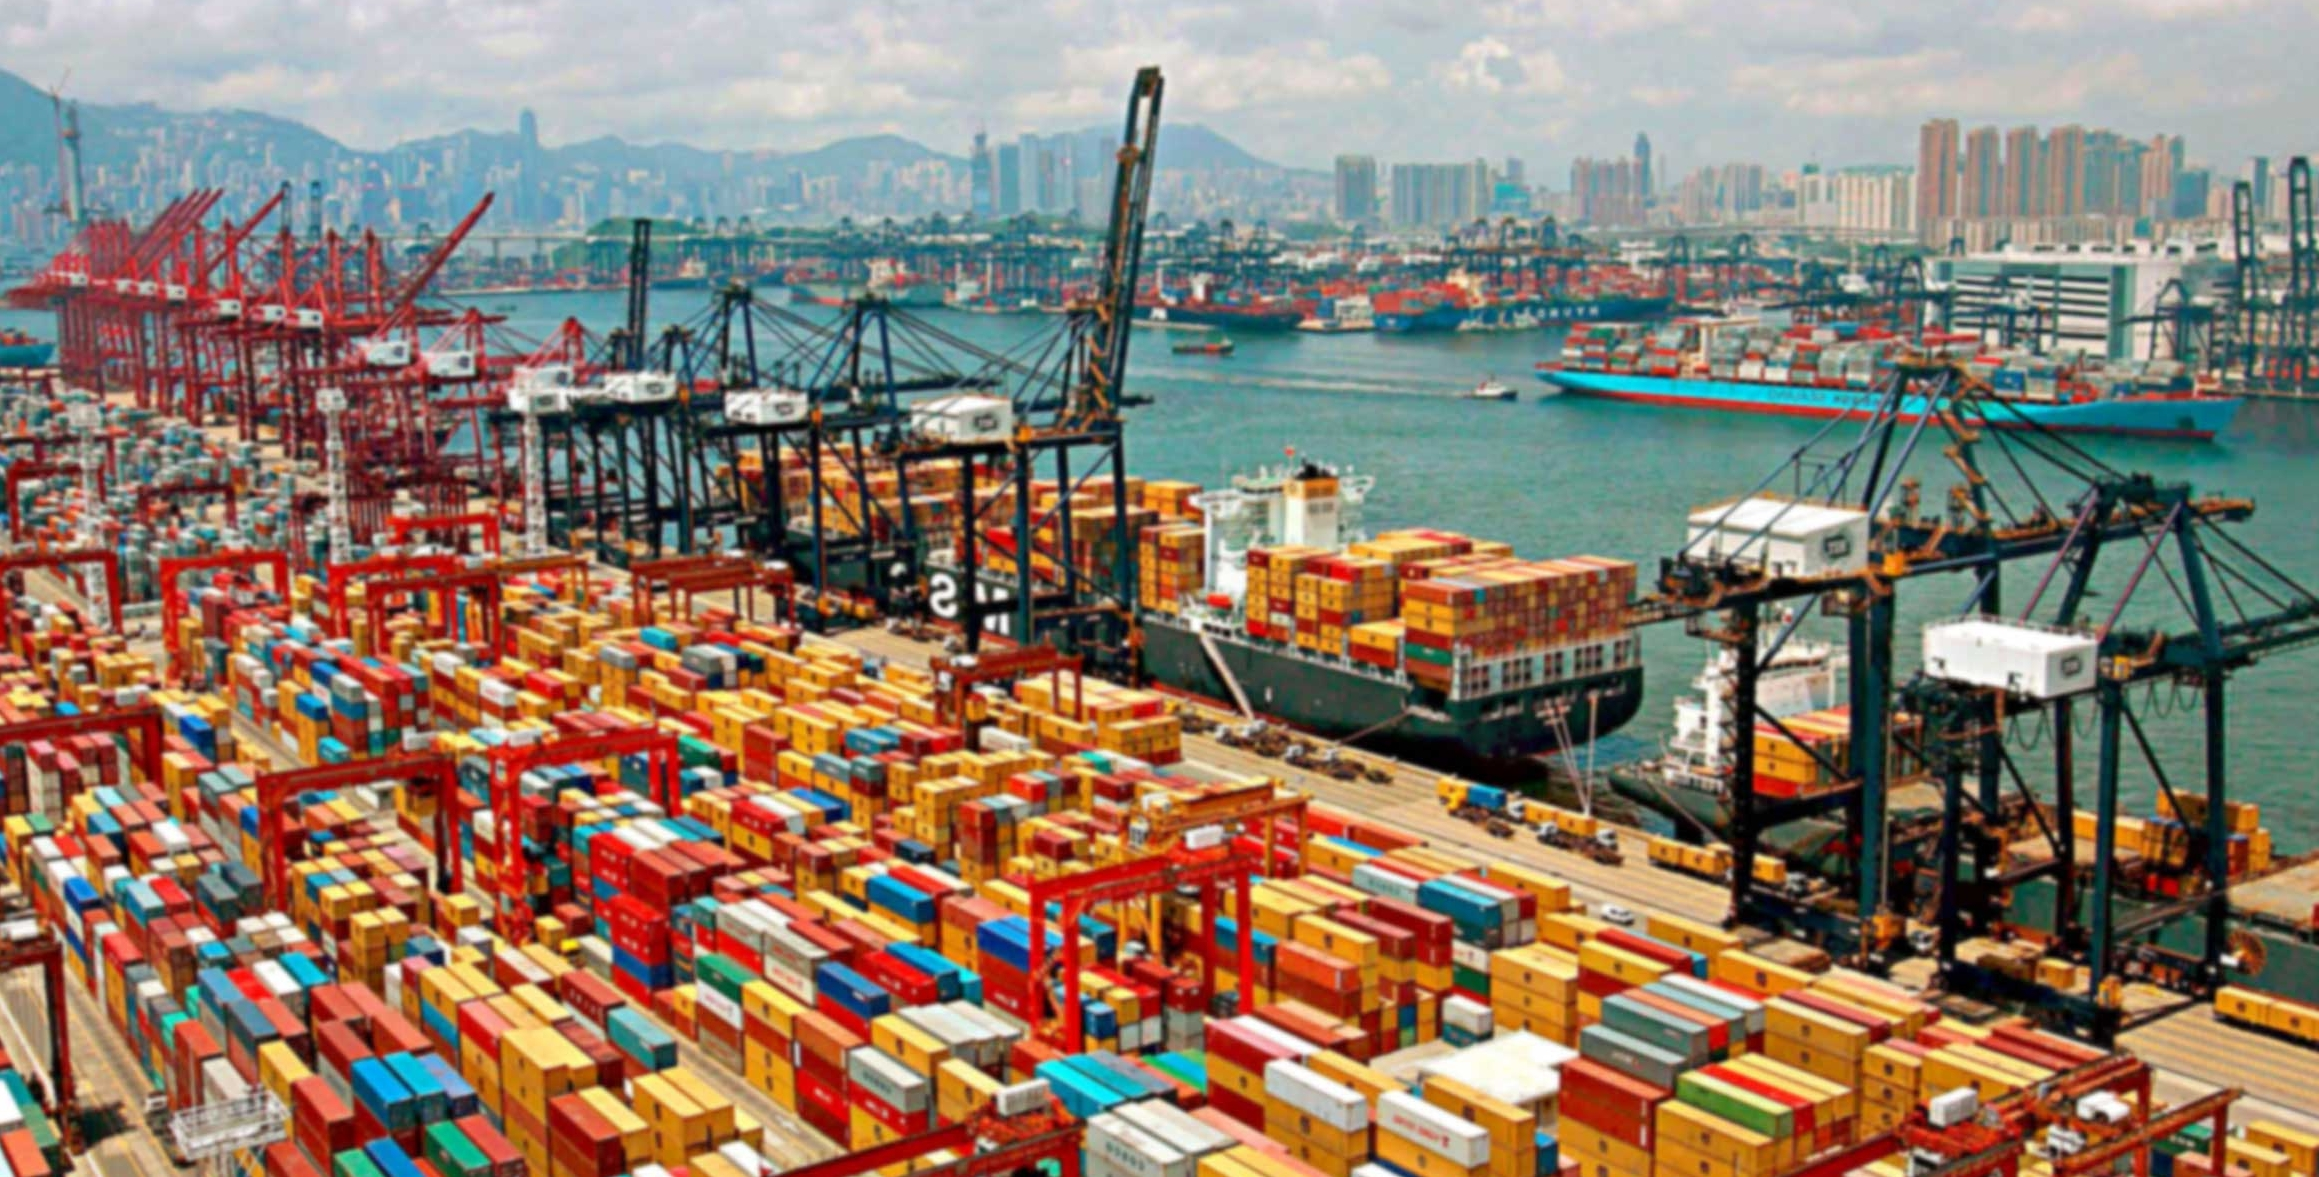 sea port formalities for exportation How to perform customs formalities  according to exportation regulations,  logistical service, which includes handling customs and port formalities,.